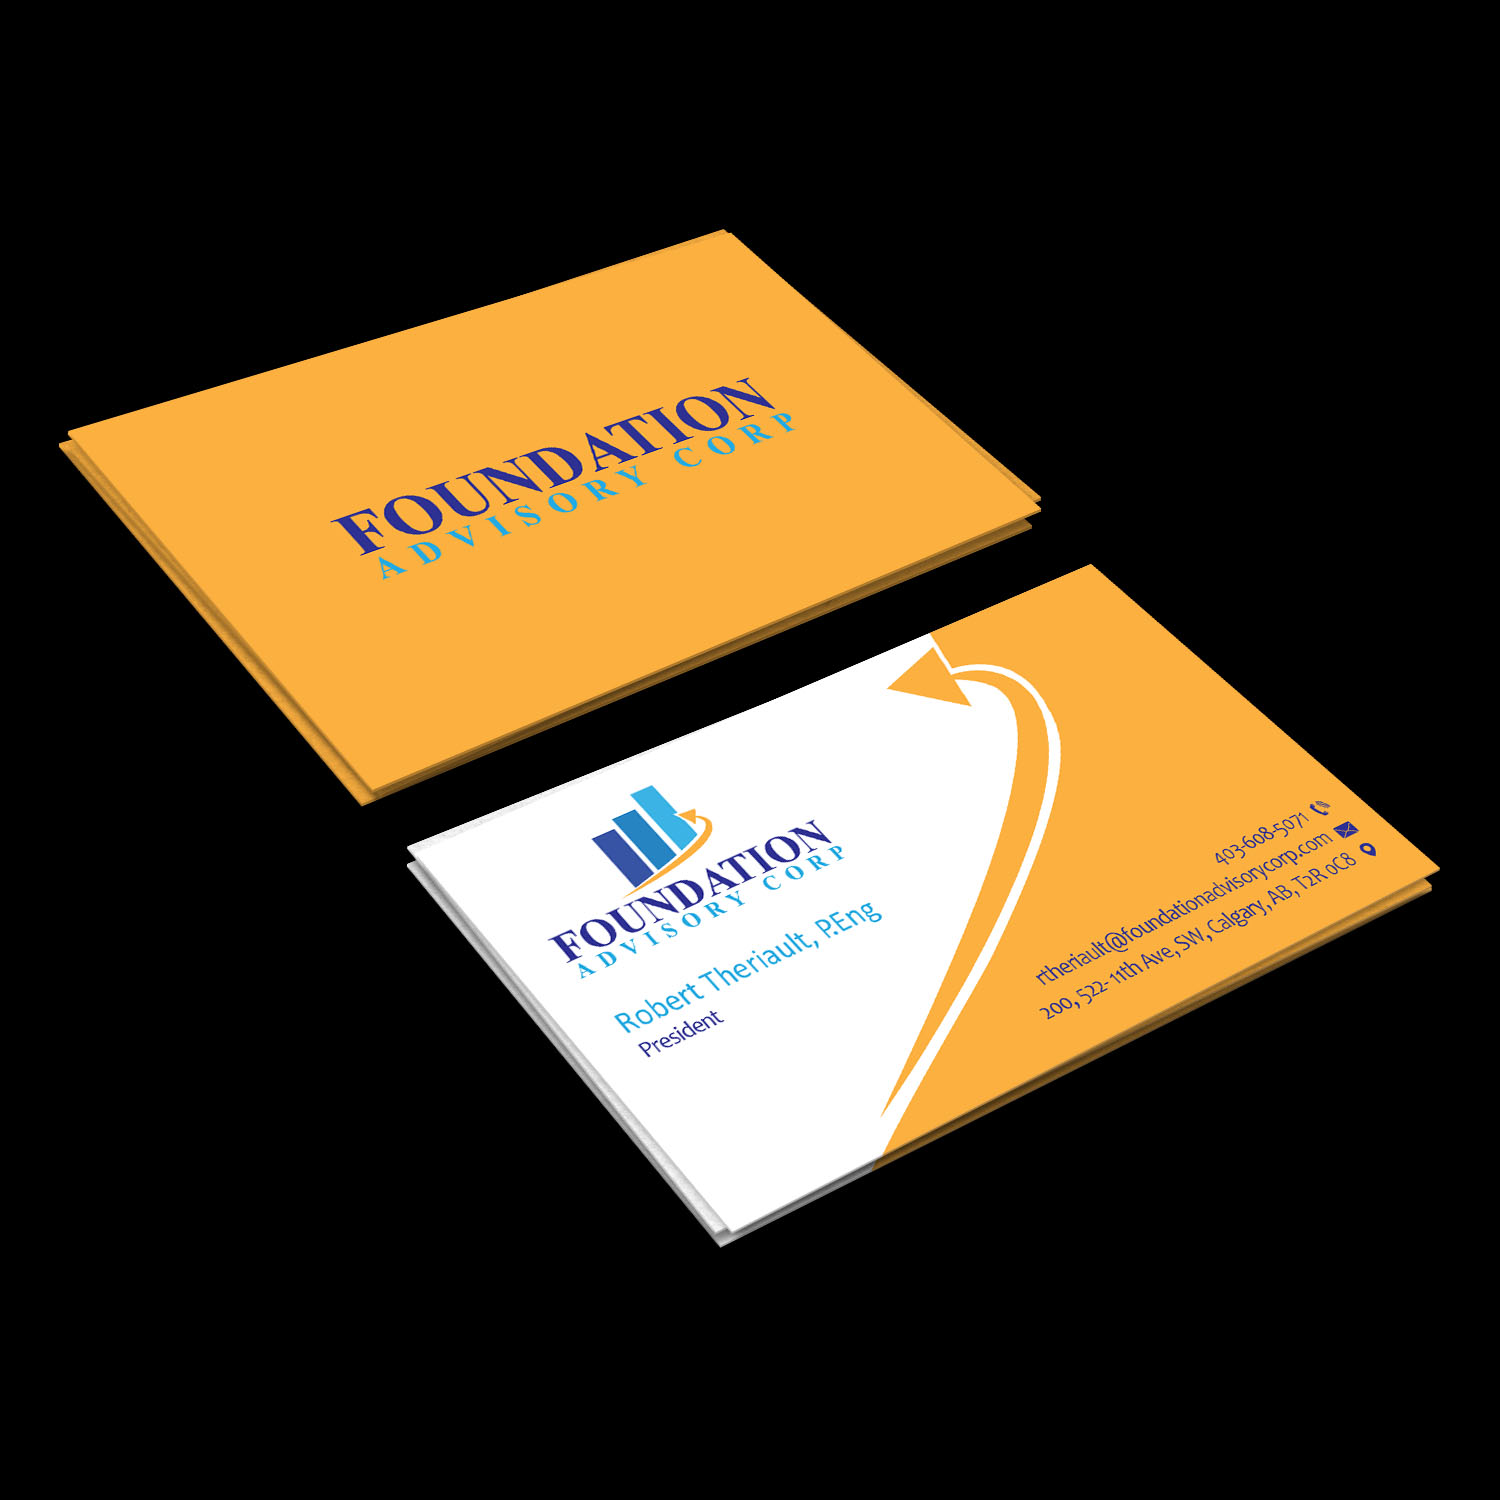 Serious professional consulting business card design for business card design by creative jiniya for copperwood ventures inc design 17230768 reheart Choice Image